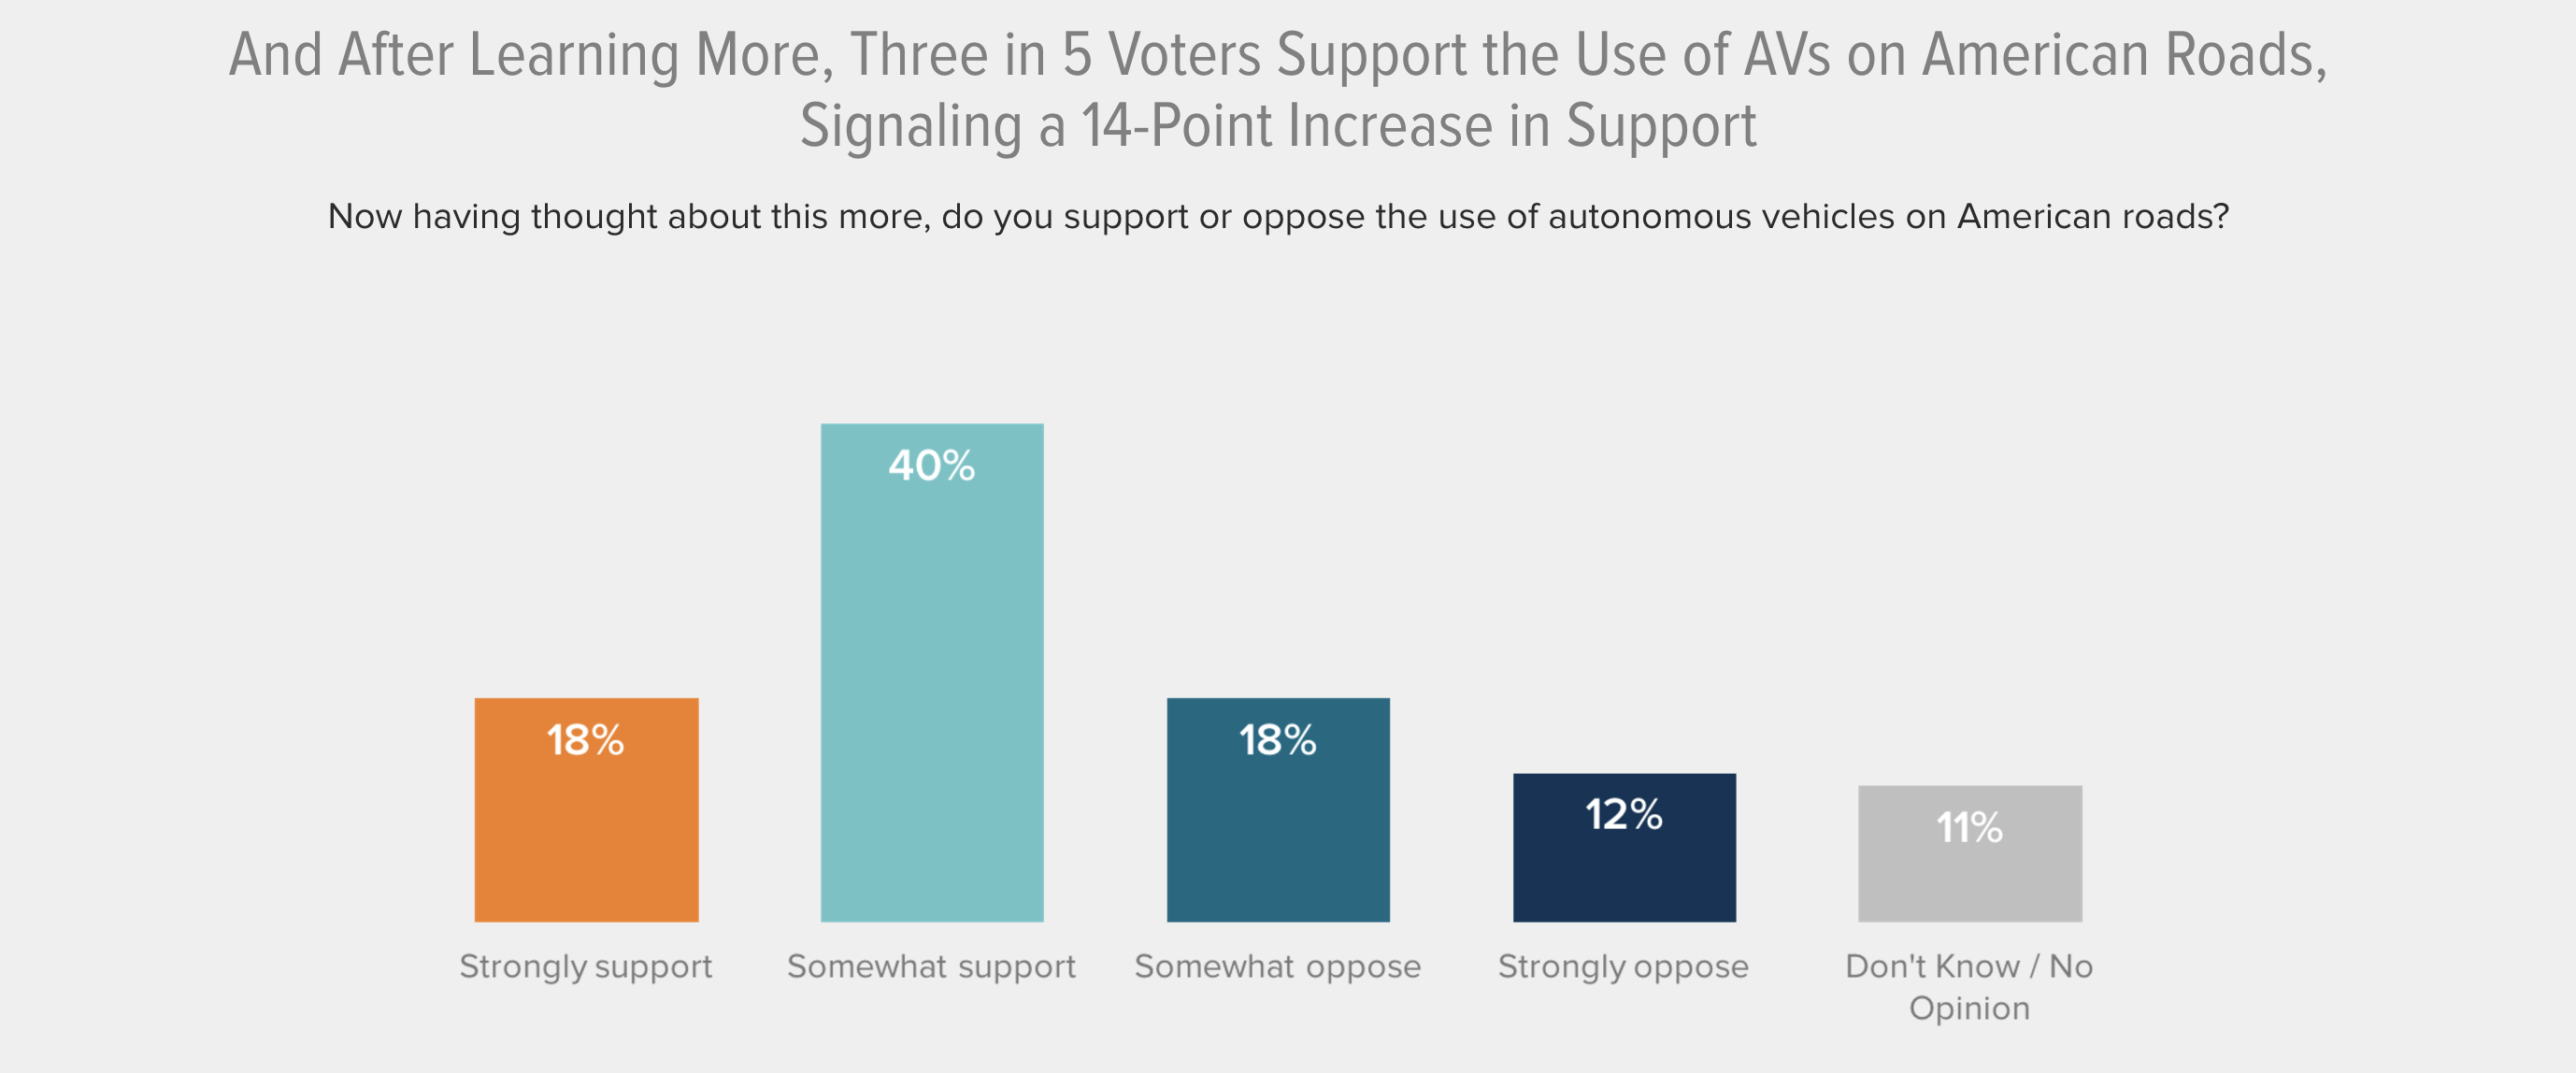 And After Learning More, Three in 5 Voters Support the Use of AVs on American Roads, Signaling a 14-Point Increase in Support